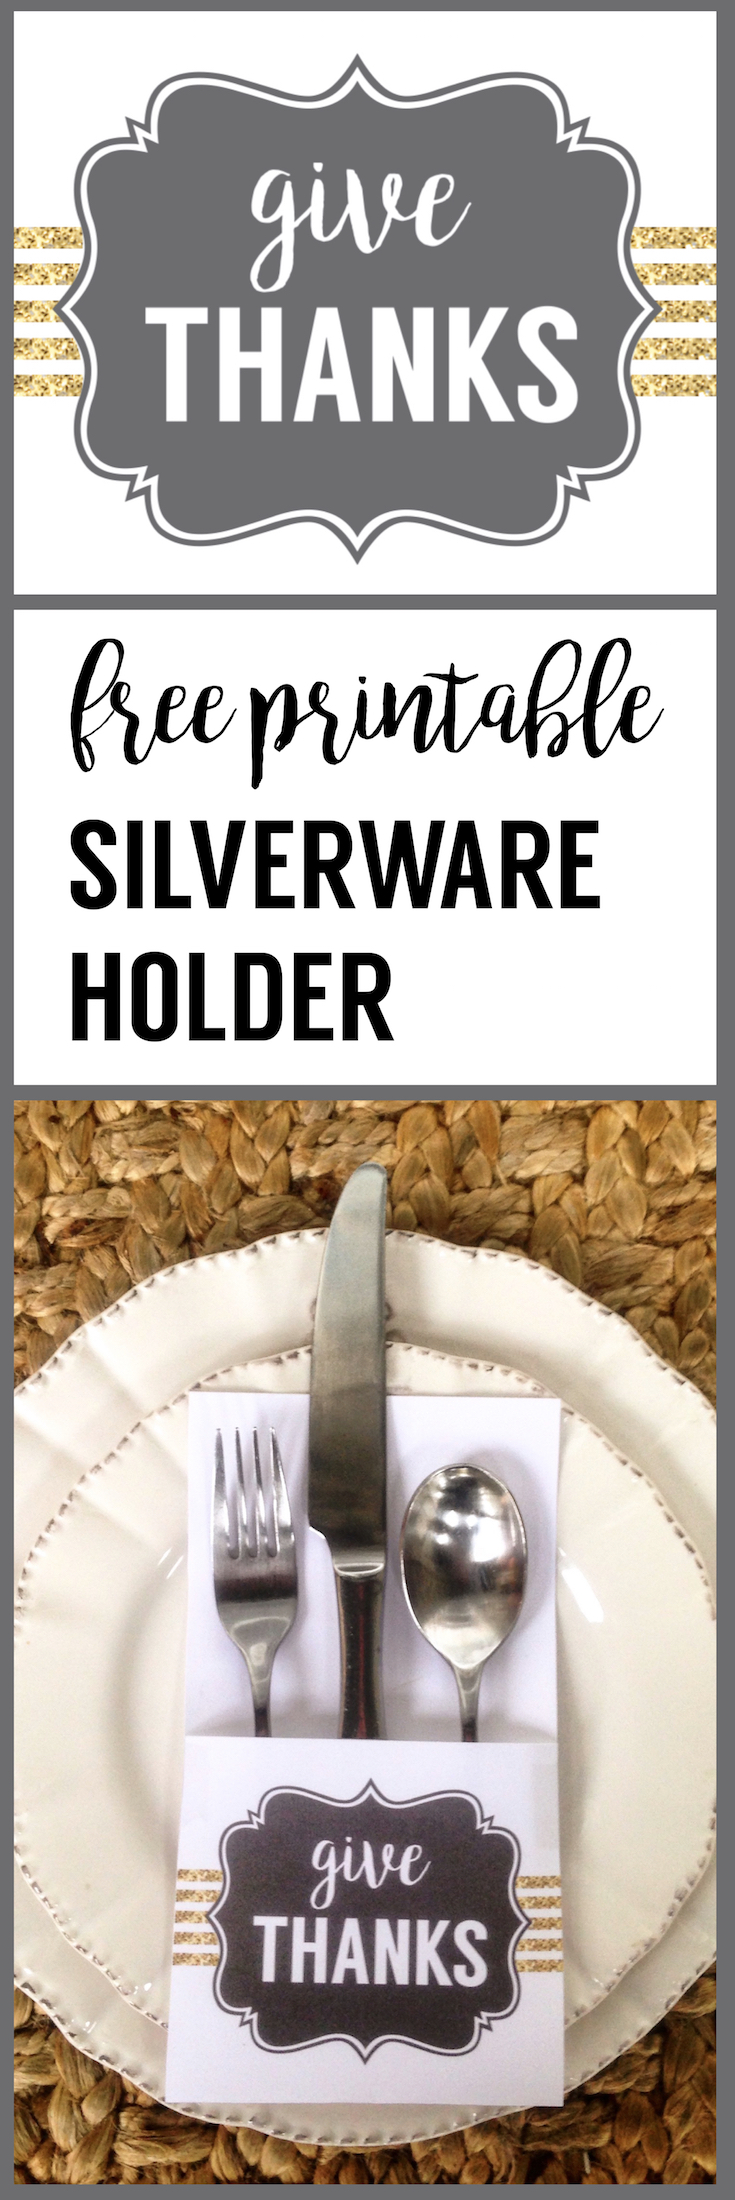 Thanksgiving Silverware Holder Free Printable. Give Thanks utensil holder to add to the decor of your Thanksgiving table.